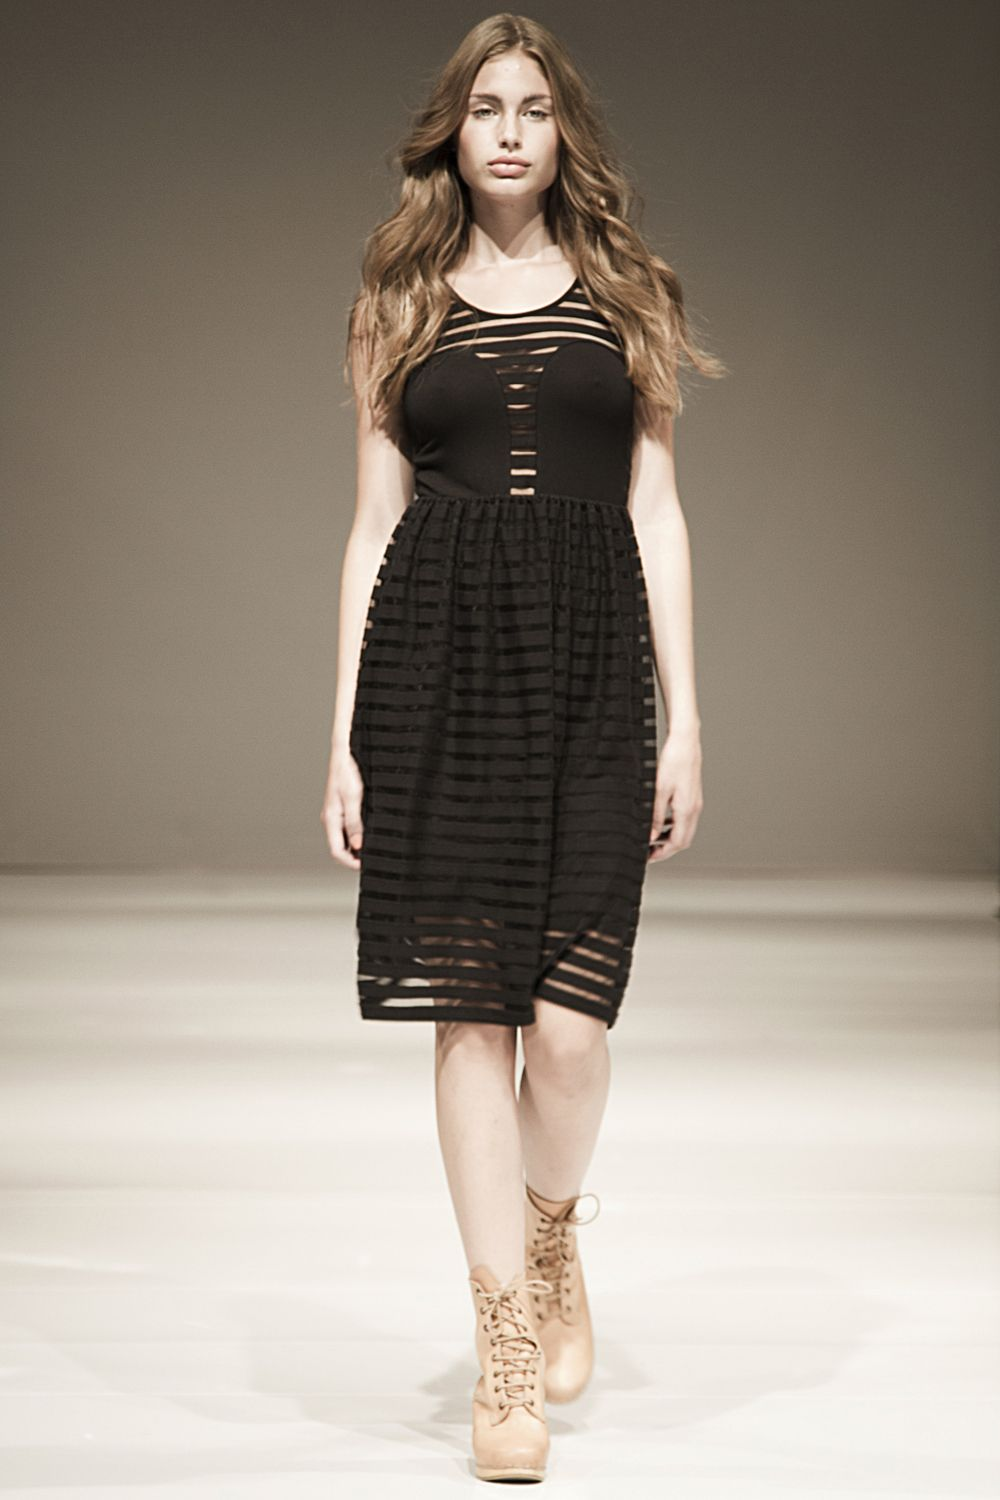 Mickey beach dress in black striped jersey by R/H